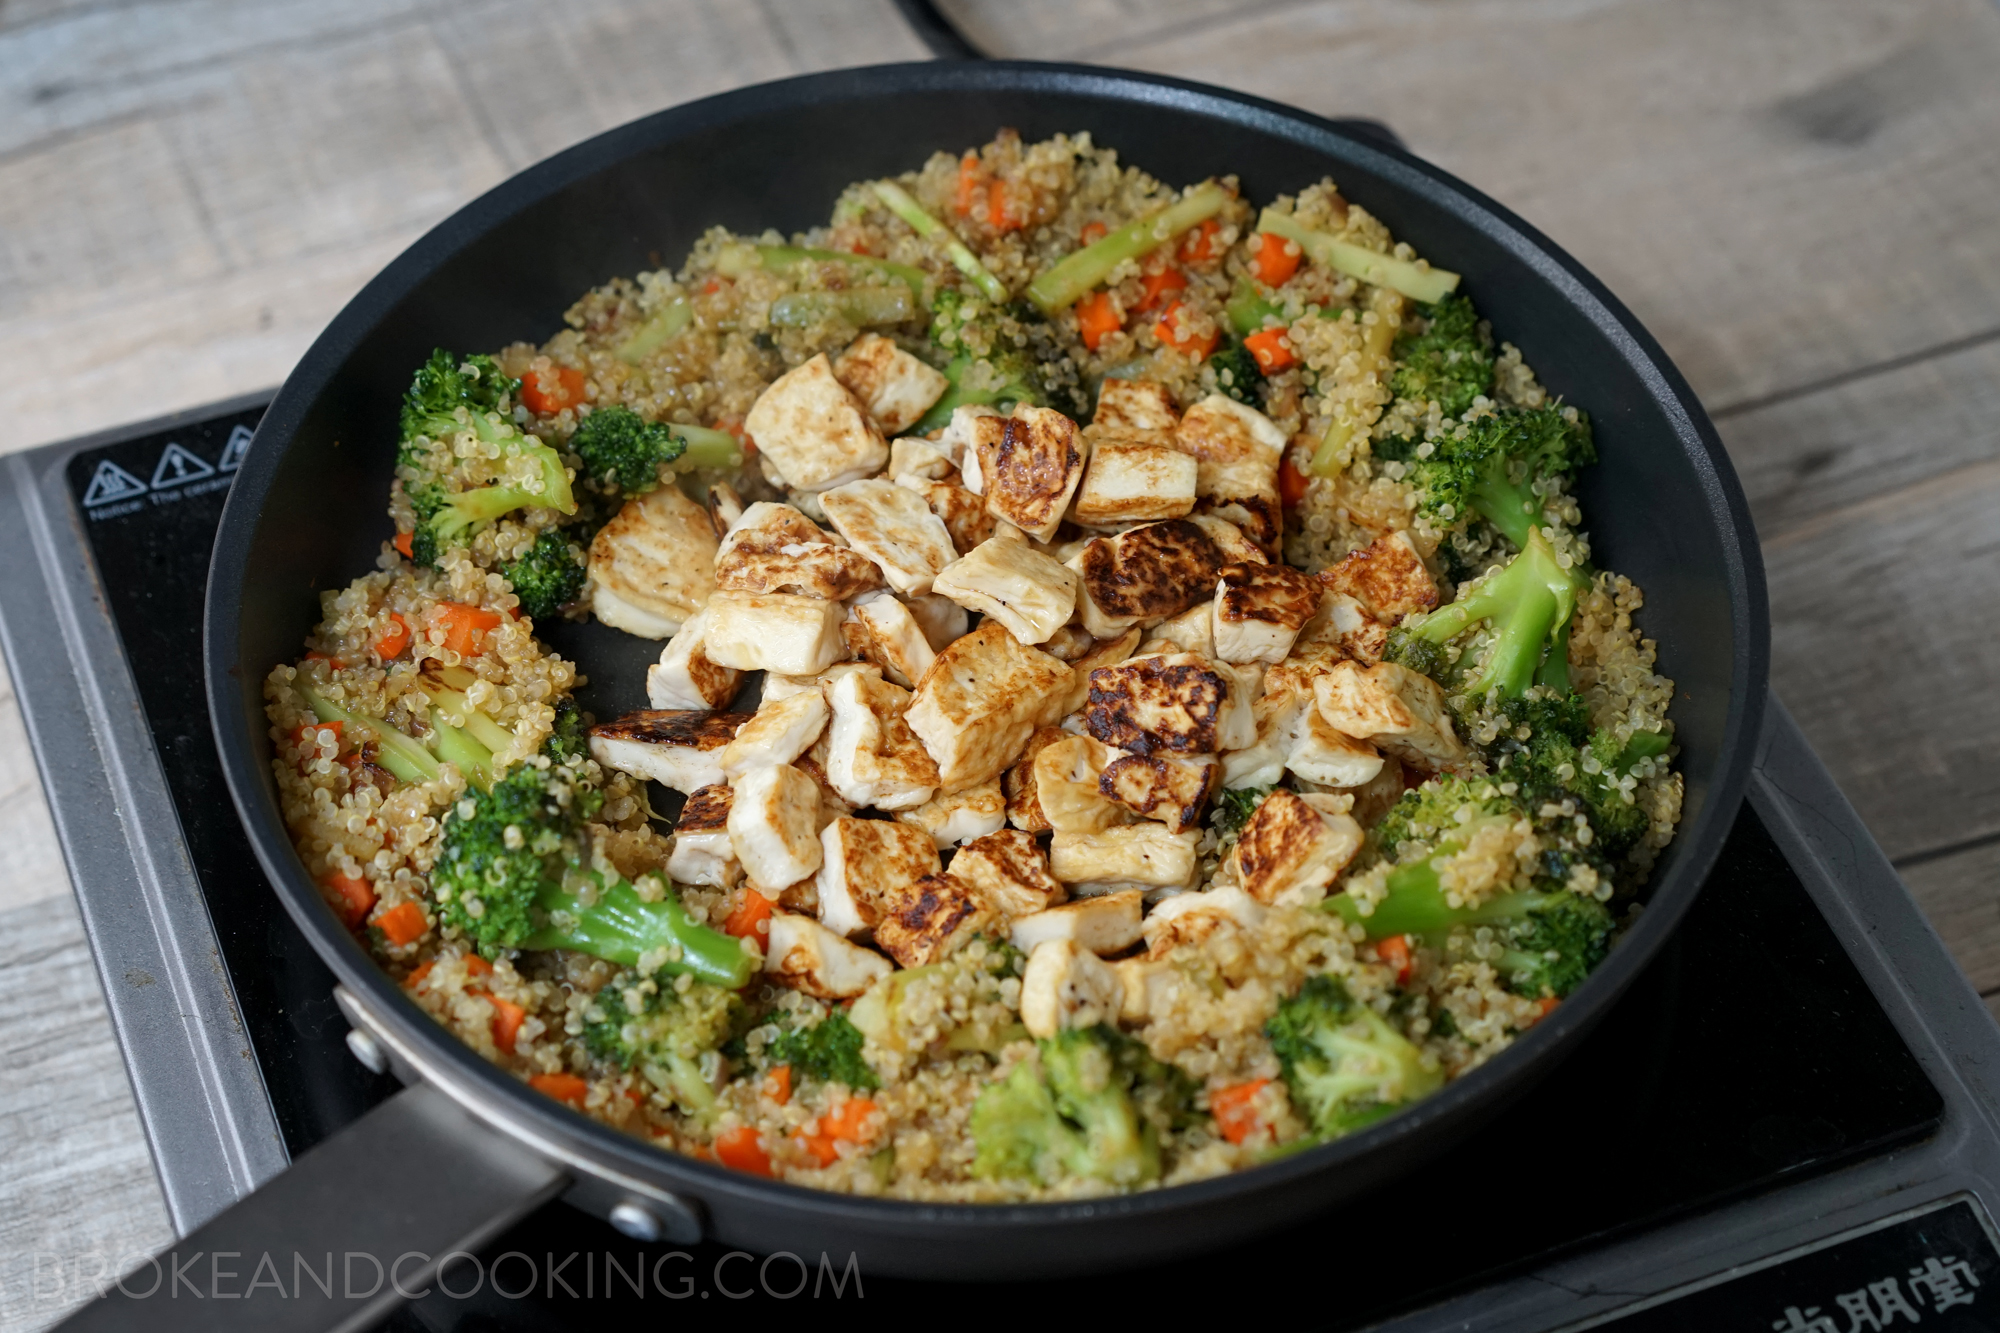 Broke and Cooking Quinoa Fried Rice 18